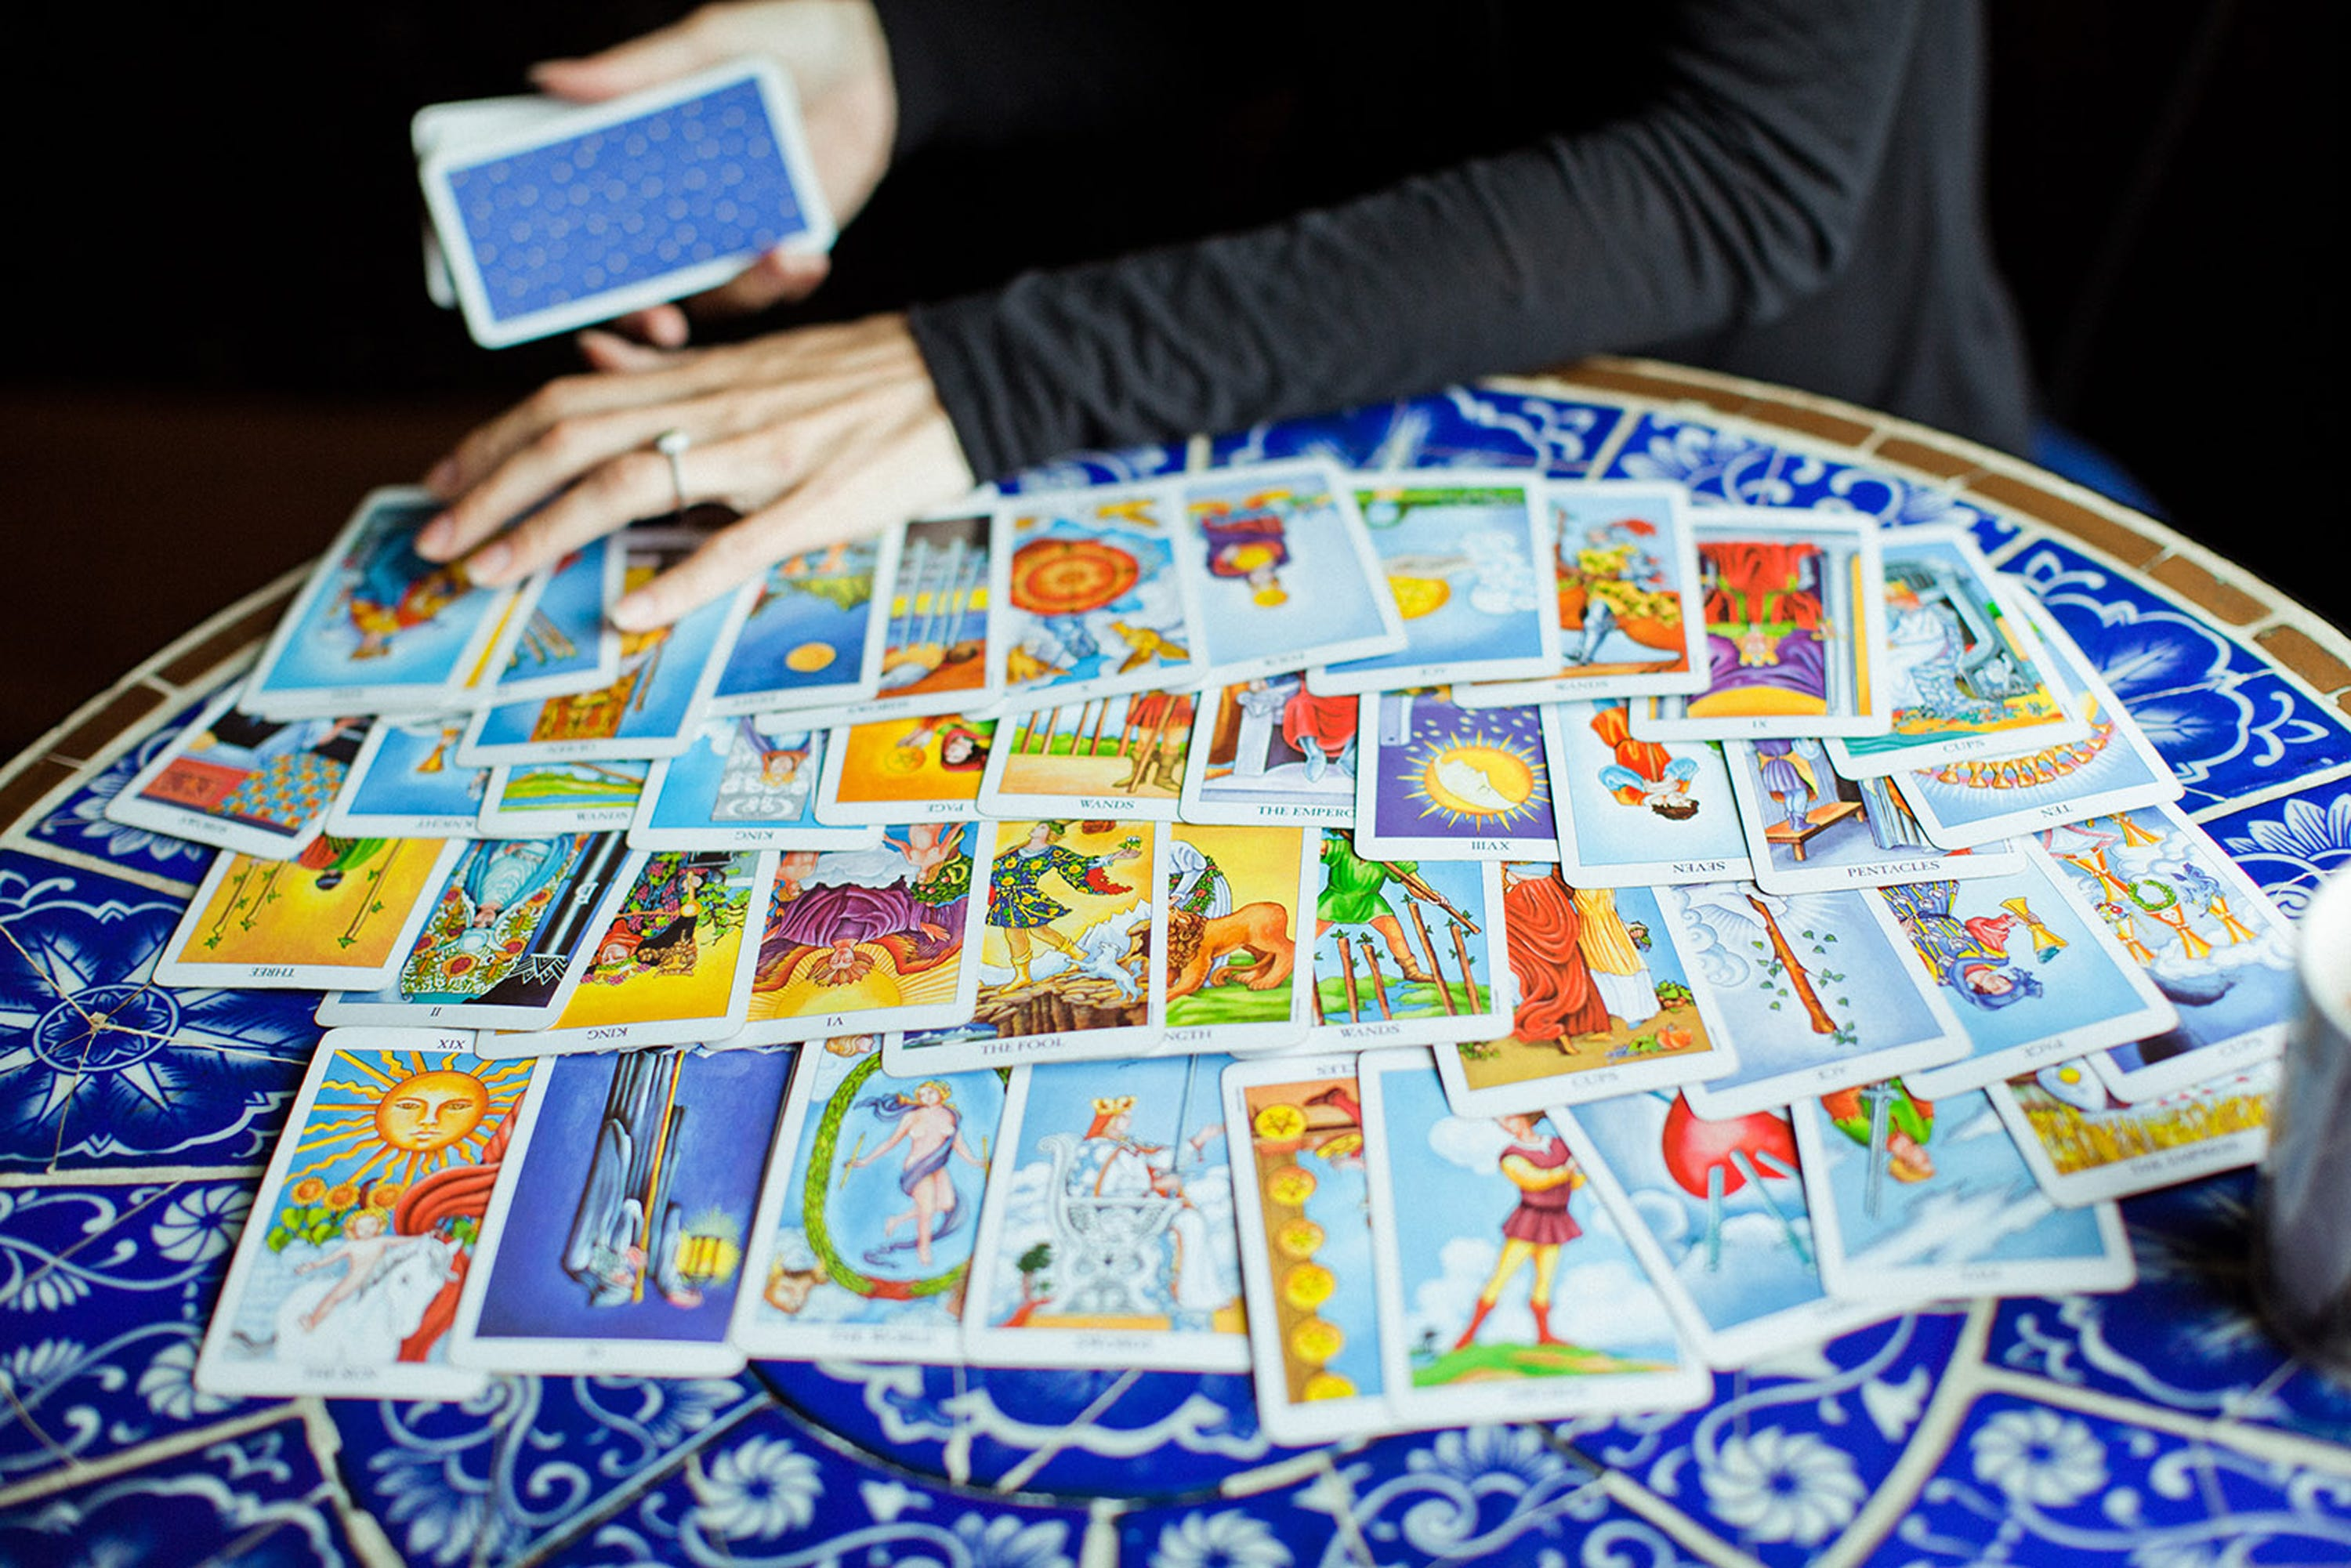 Tarot Card Reading Pet Psychic Experience True Story I Got A Tarot Reading For My Cat, & Here's What I Learned - 웹